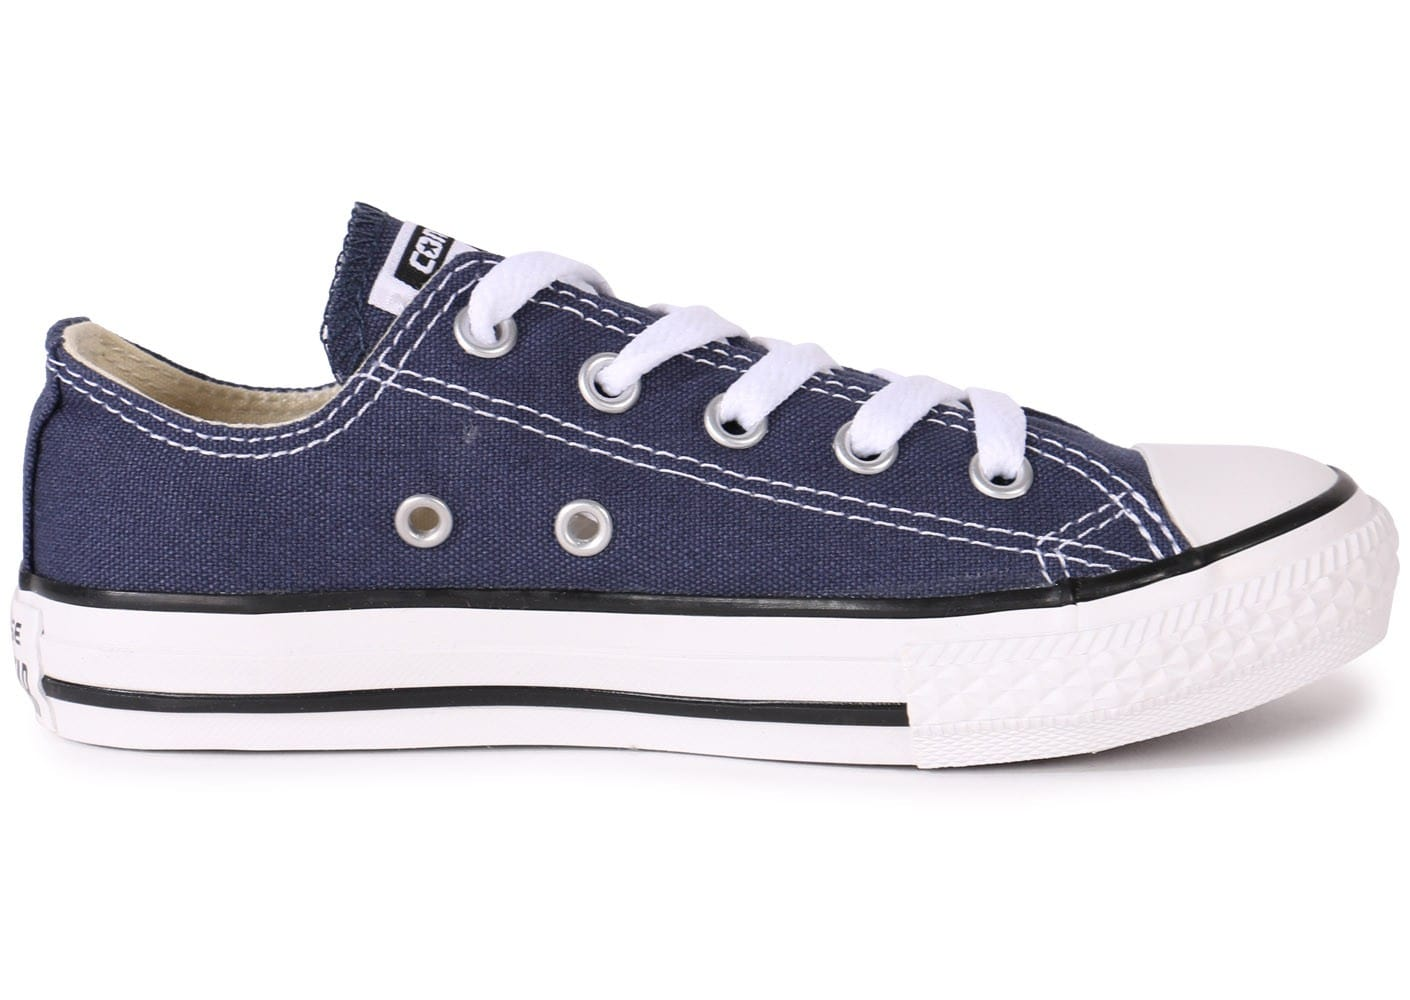 converse all star bleu marine homme